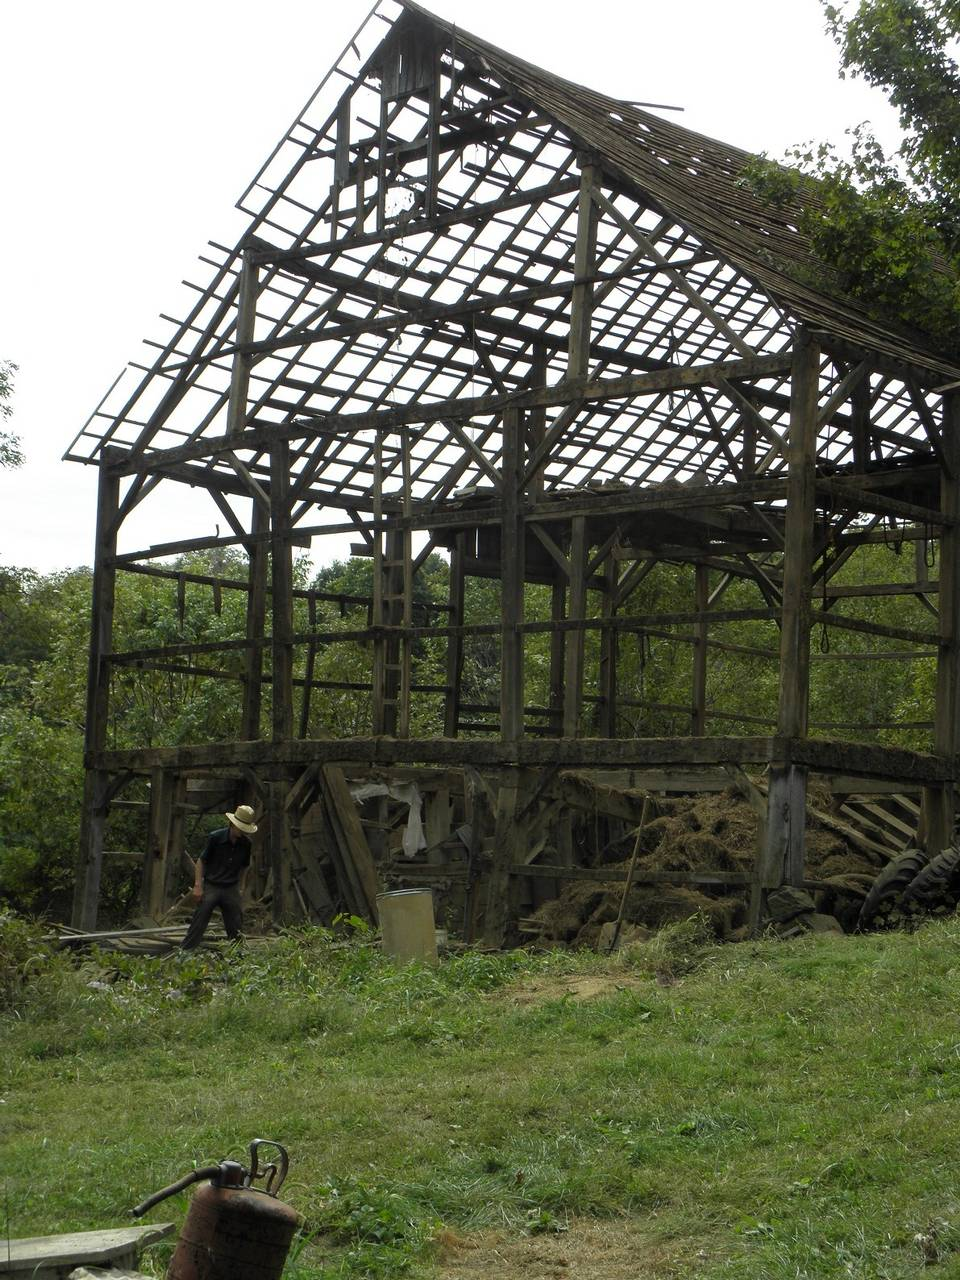 a barn deconstructed by Tom Banach of Hardeeville. On average, about 50 to 60 percent of a structure's materials can be used in a new home.